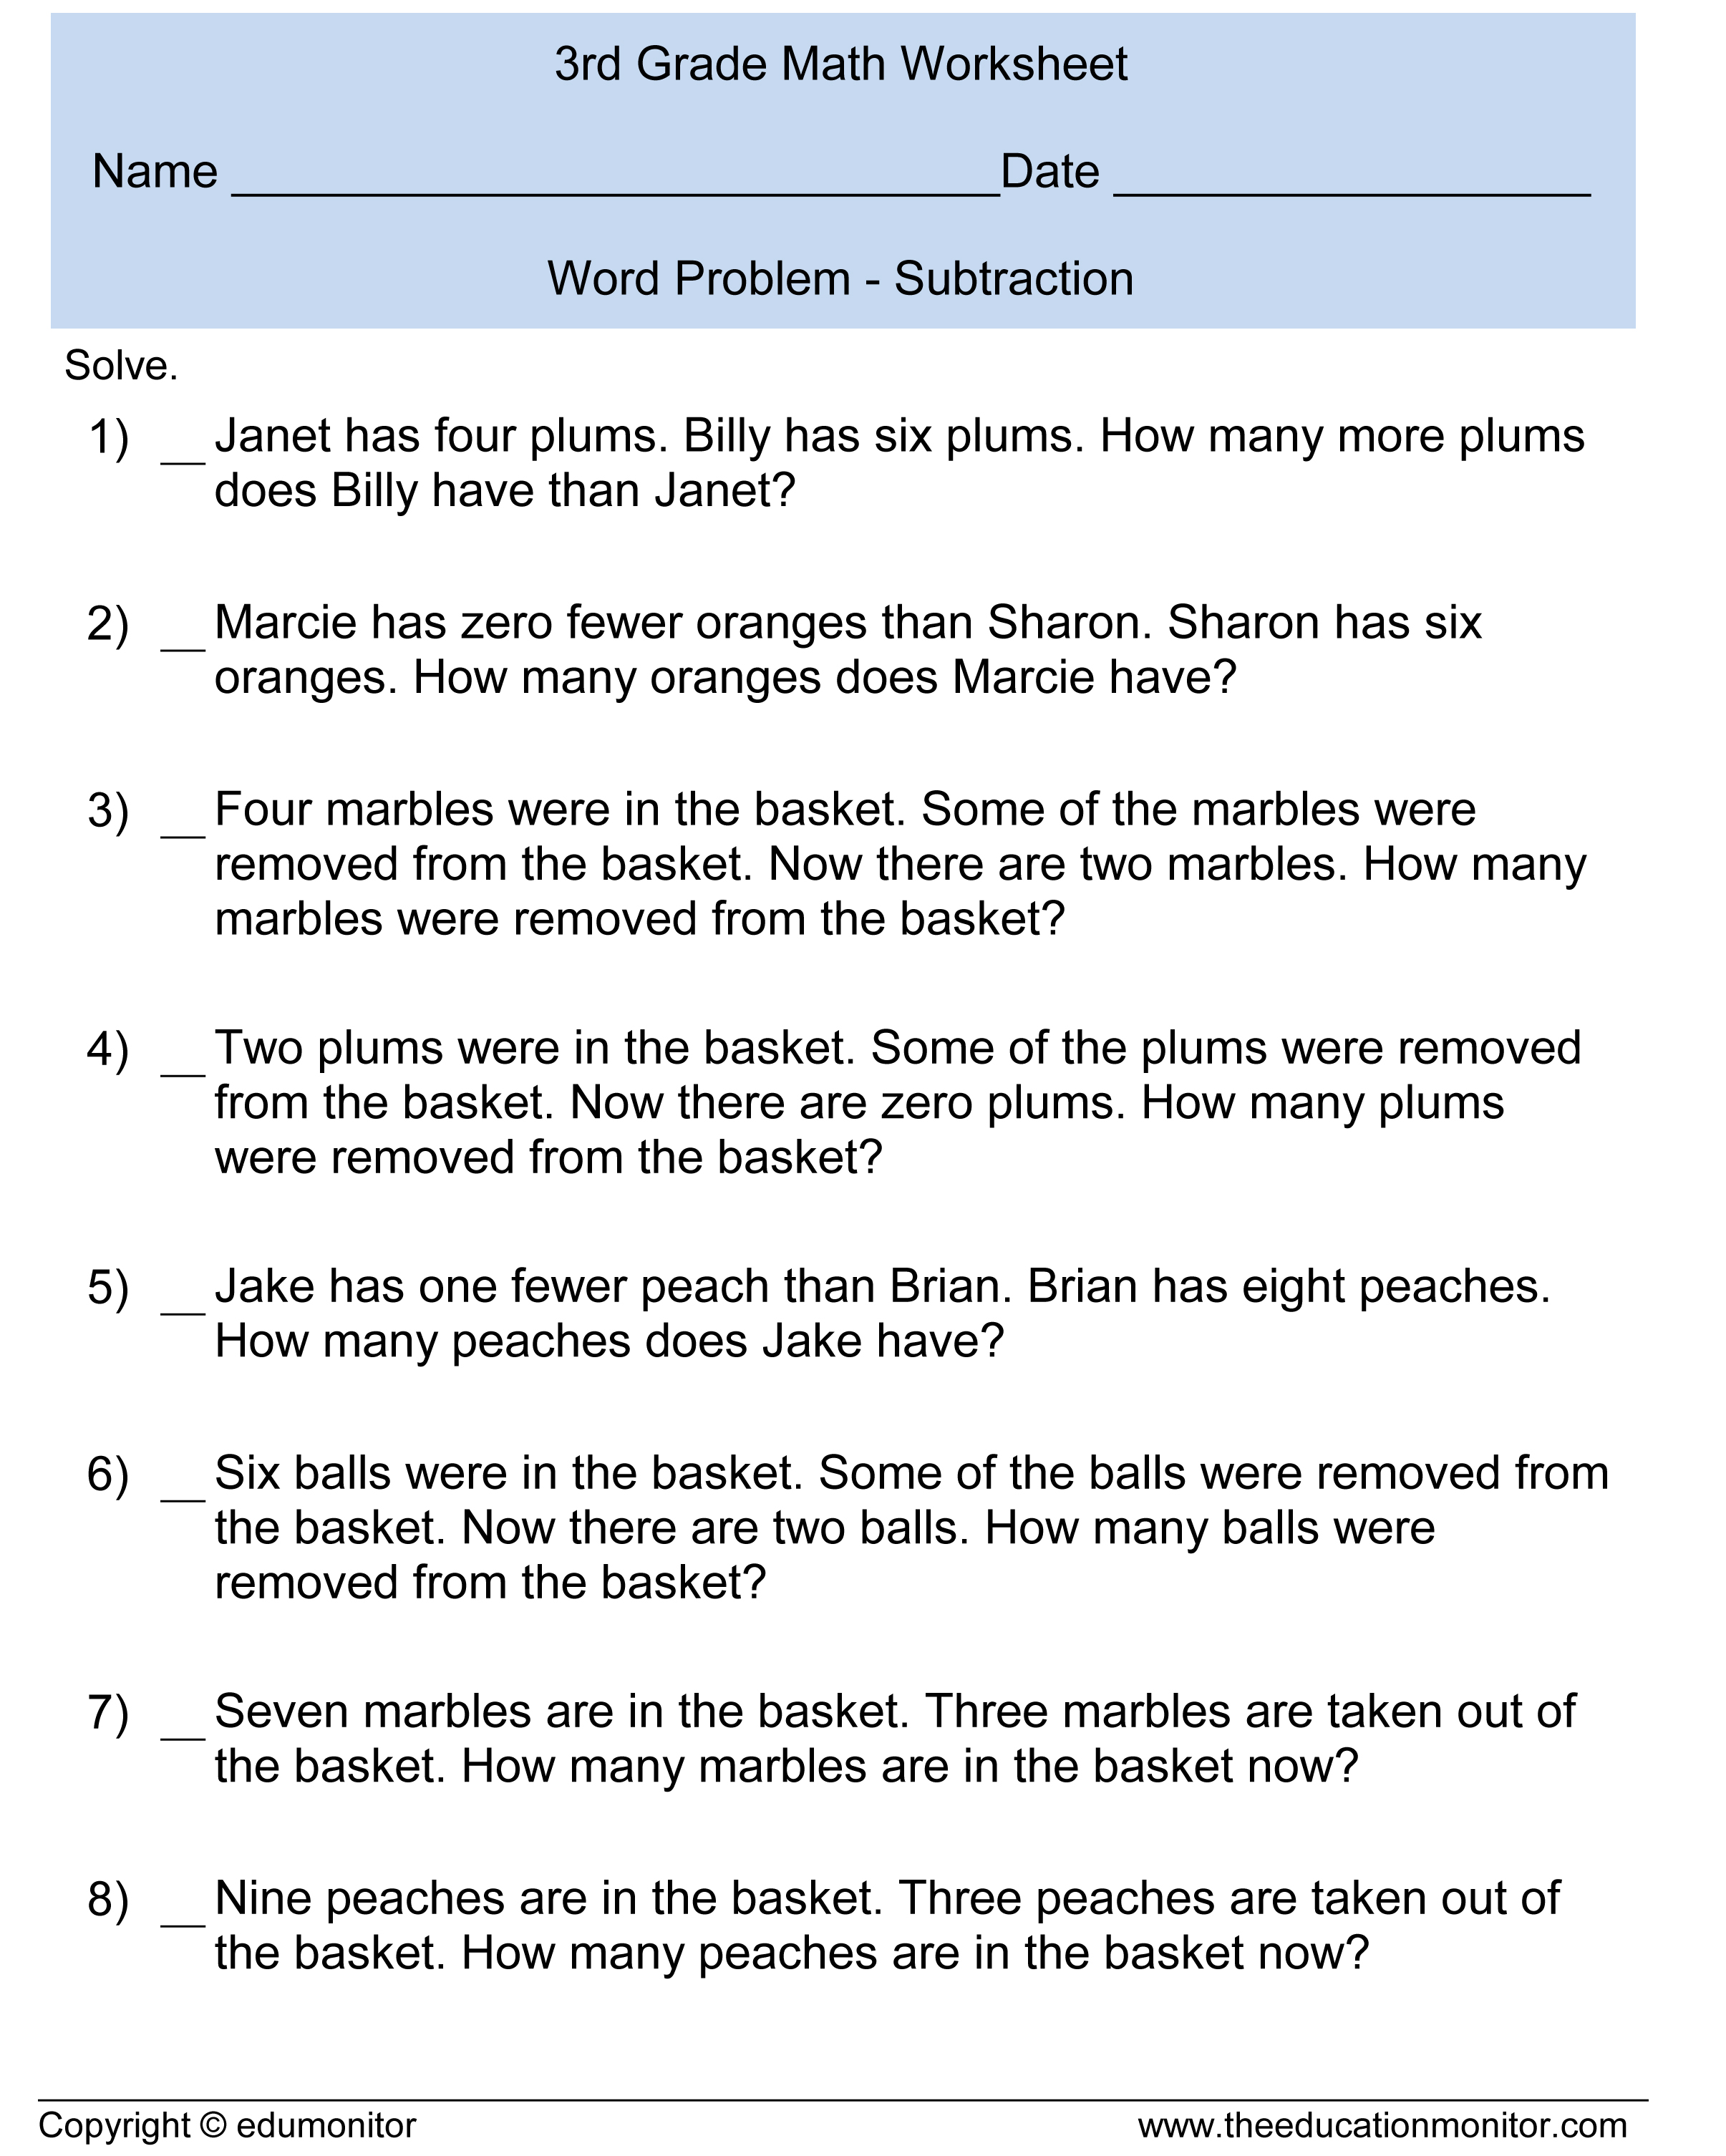 Worksheet Fractions Word Problems 5th Grade worksheet 612792 multiplication fraction word problems of fractions worksheets worksheets